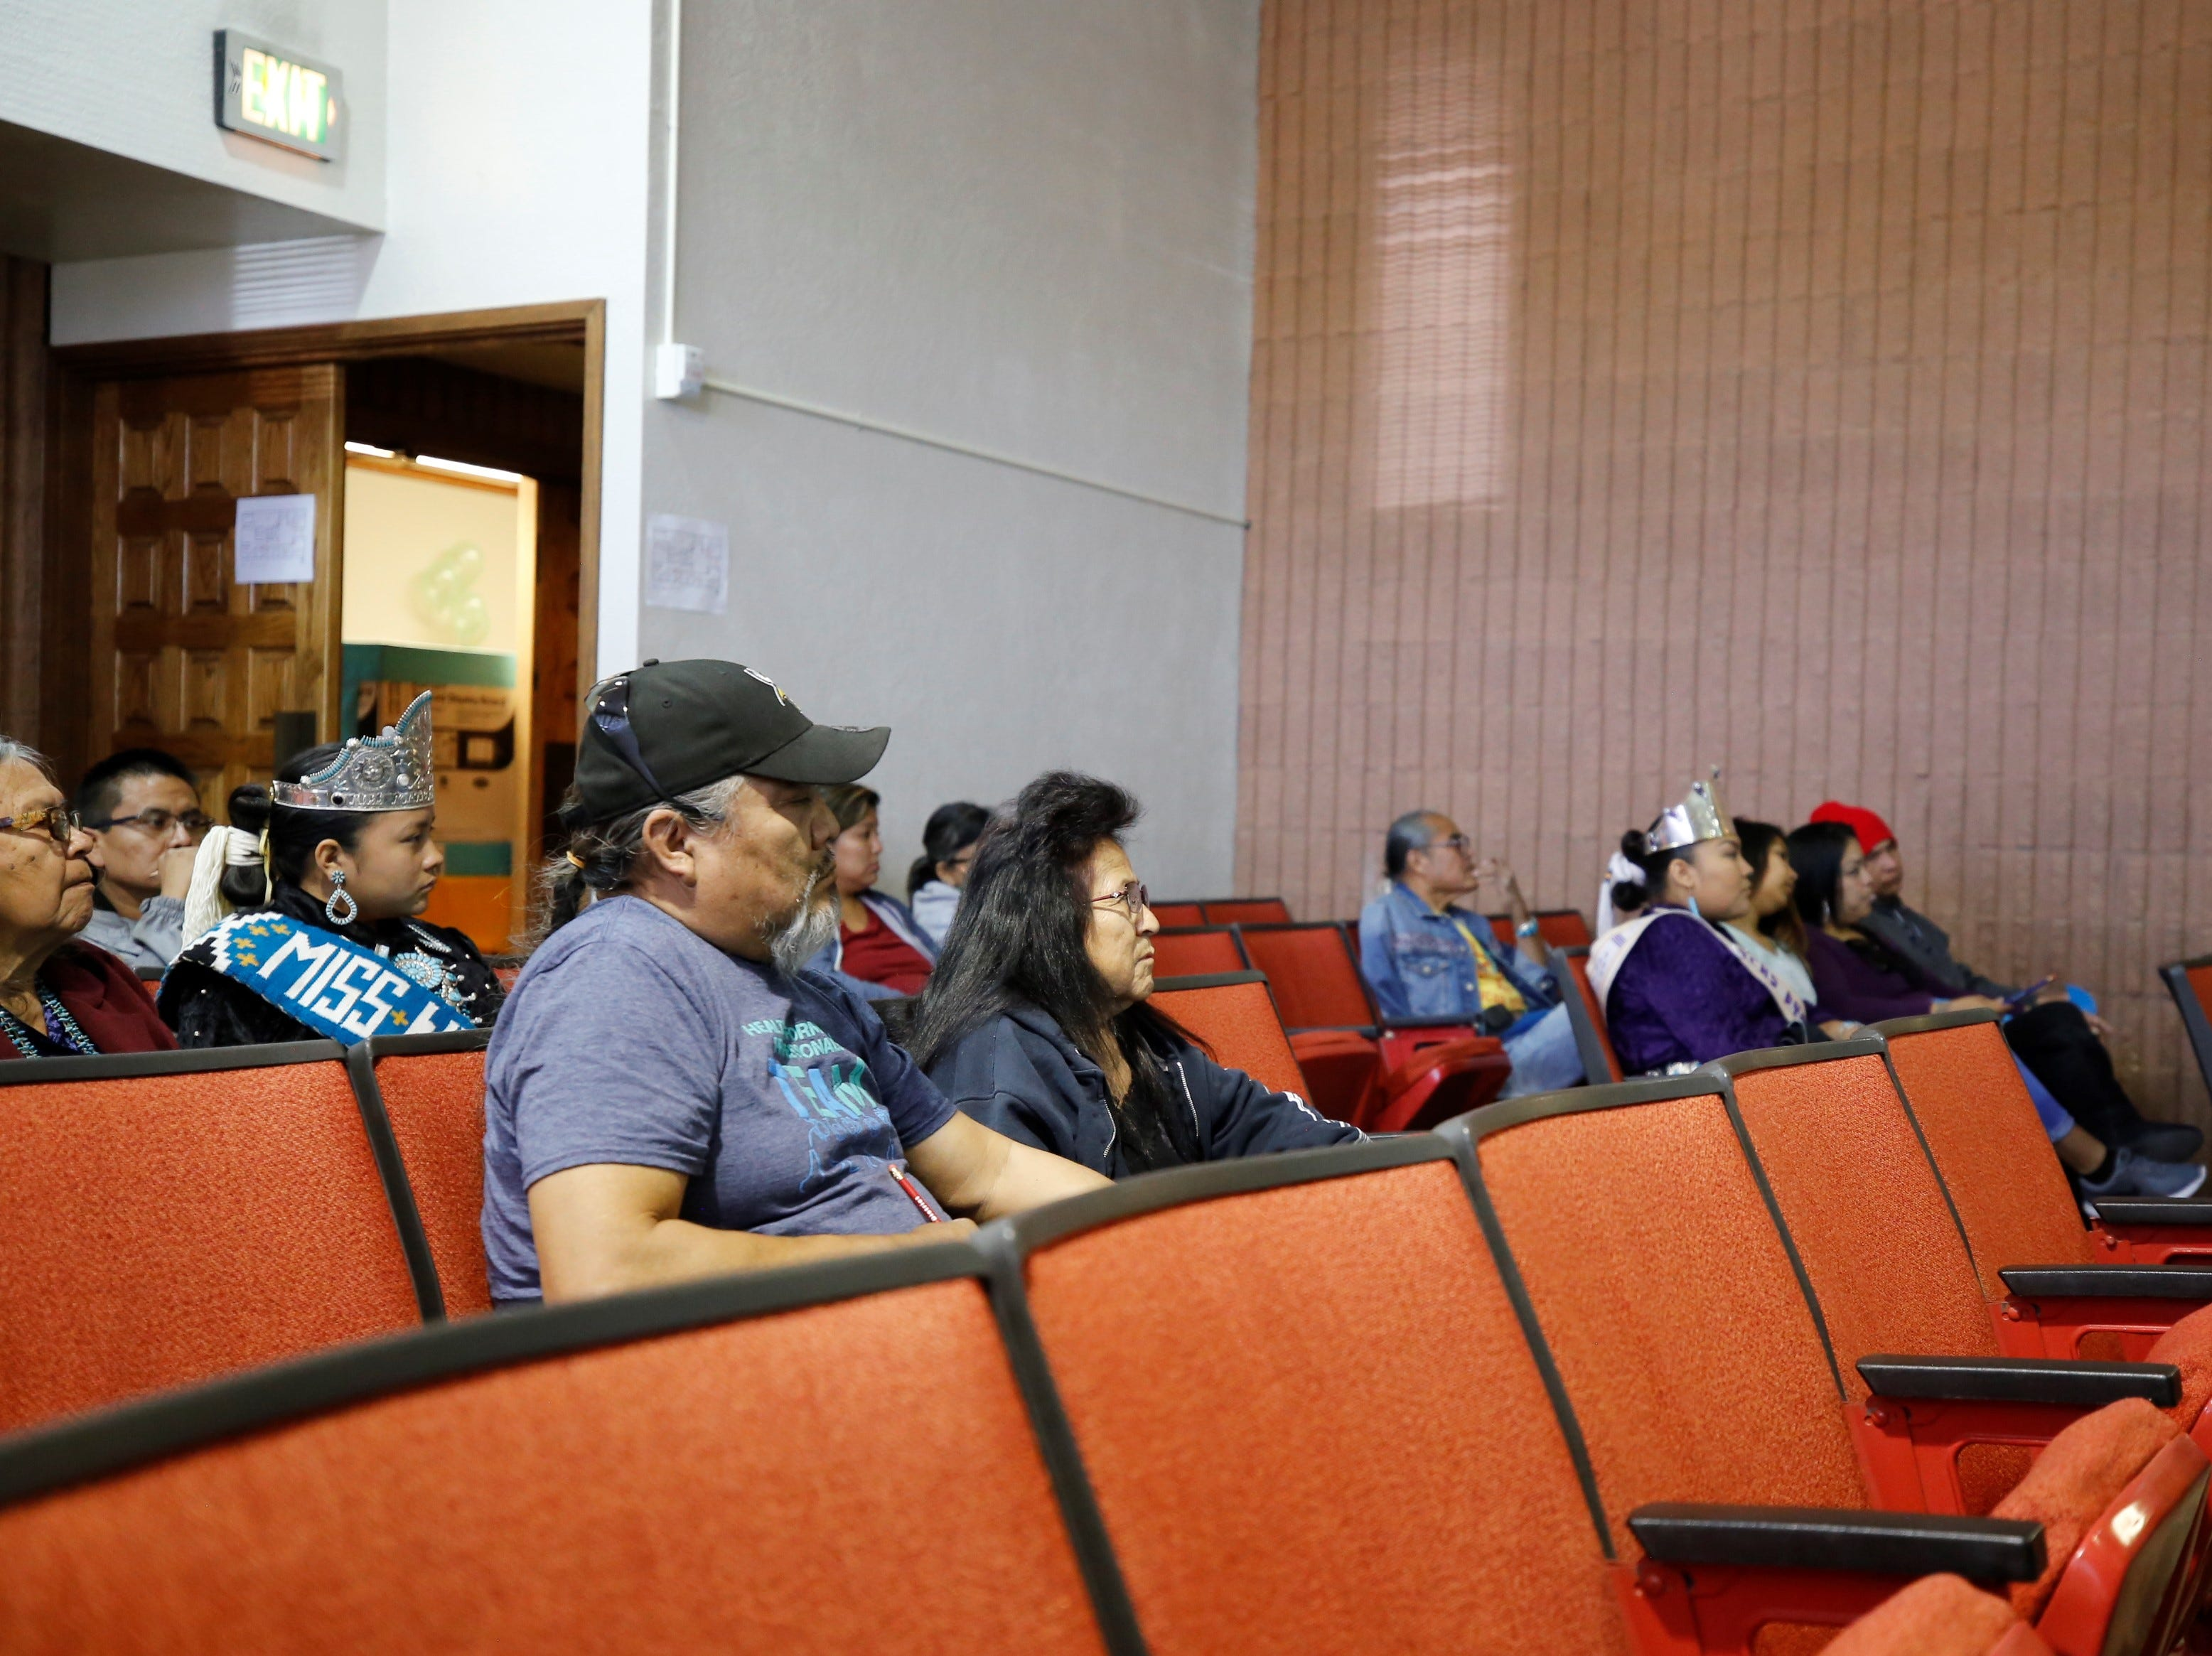 Audience members listen to a presentation about the probation program on Friday at Justice Day at the Shiprock Judicial District court.